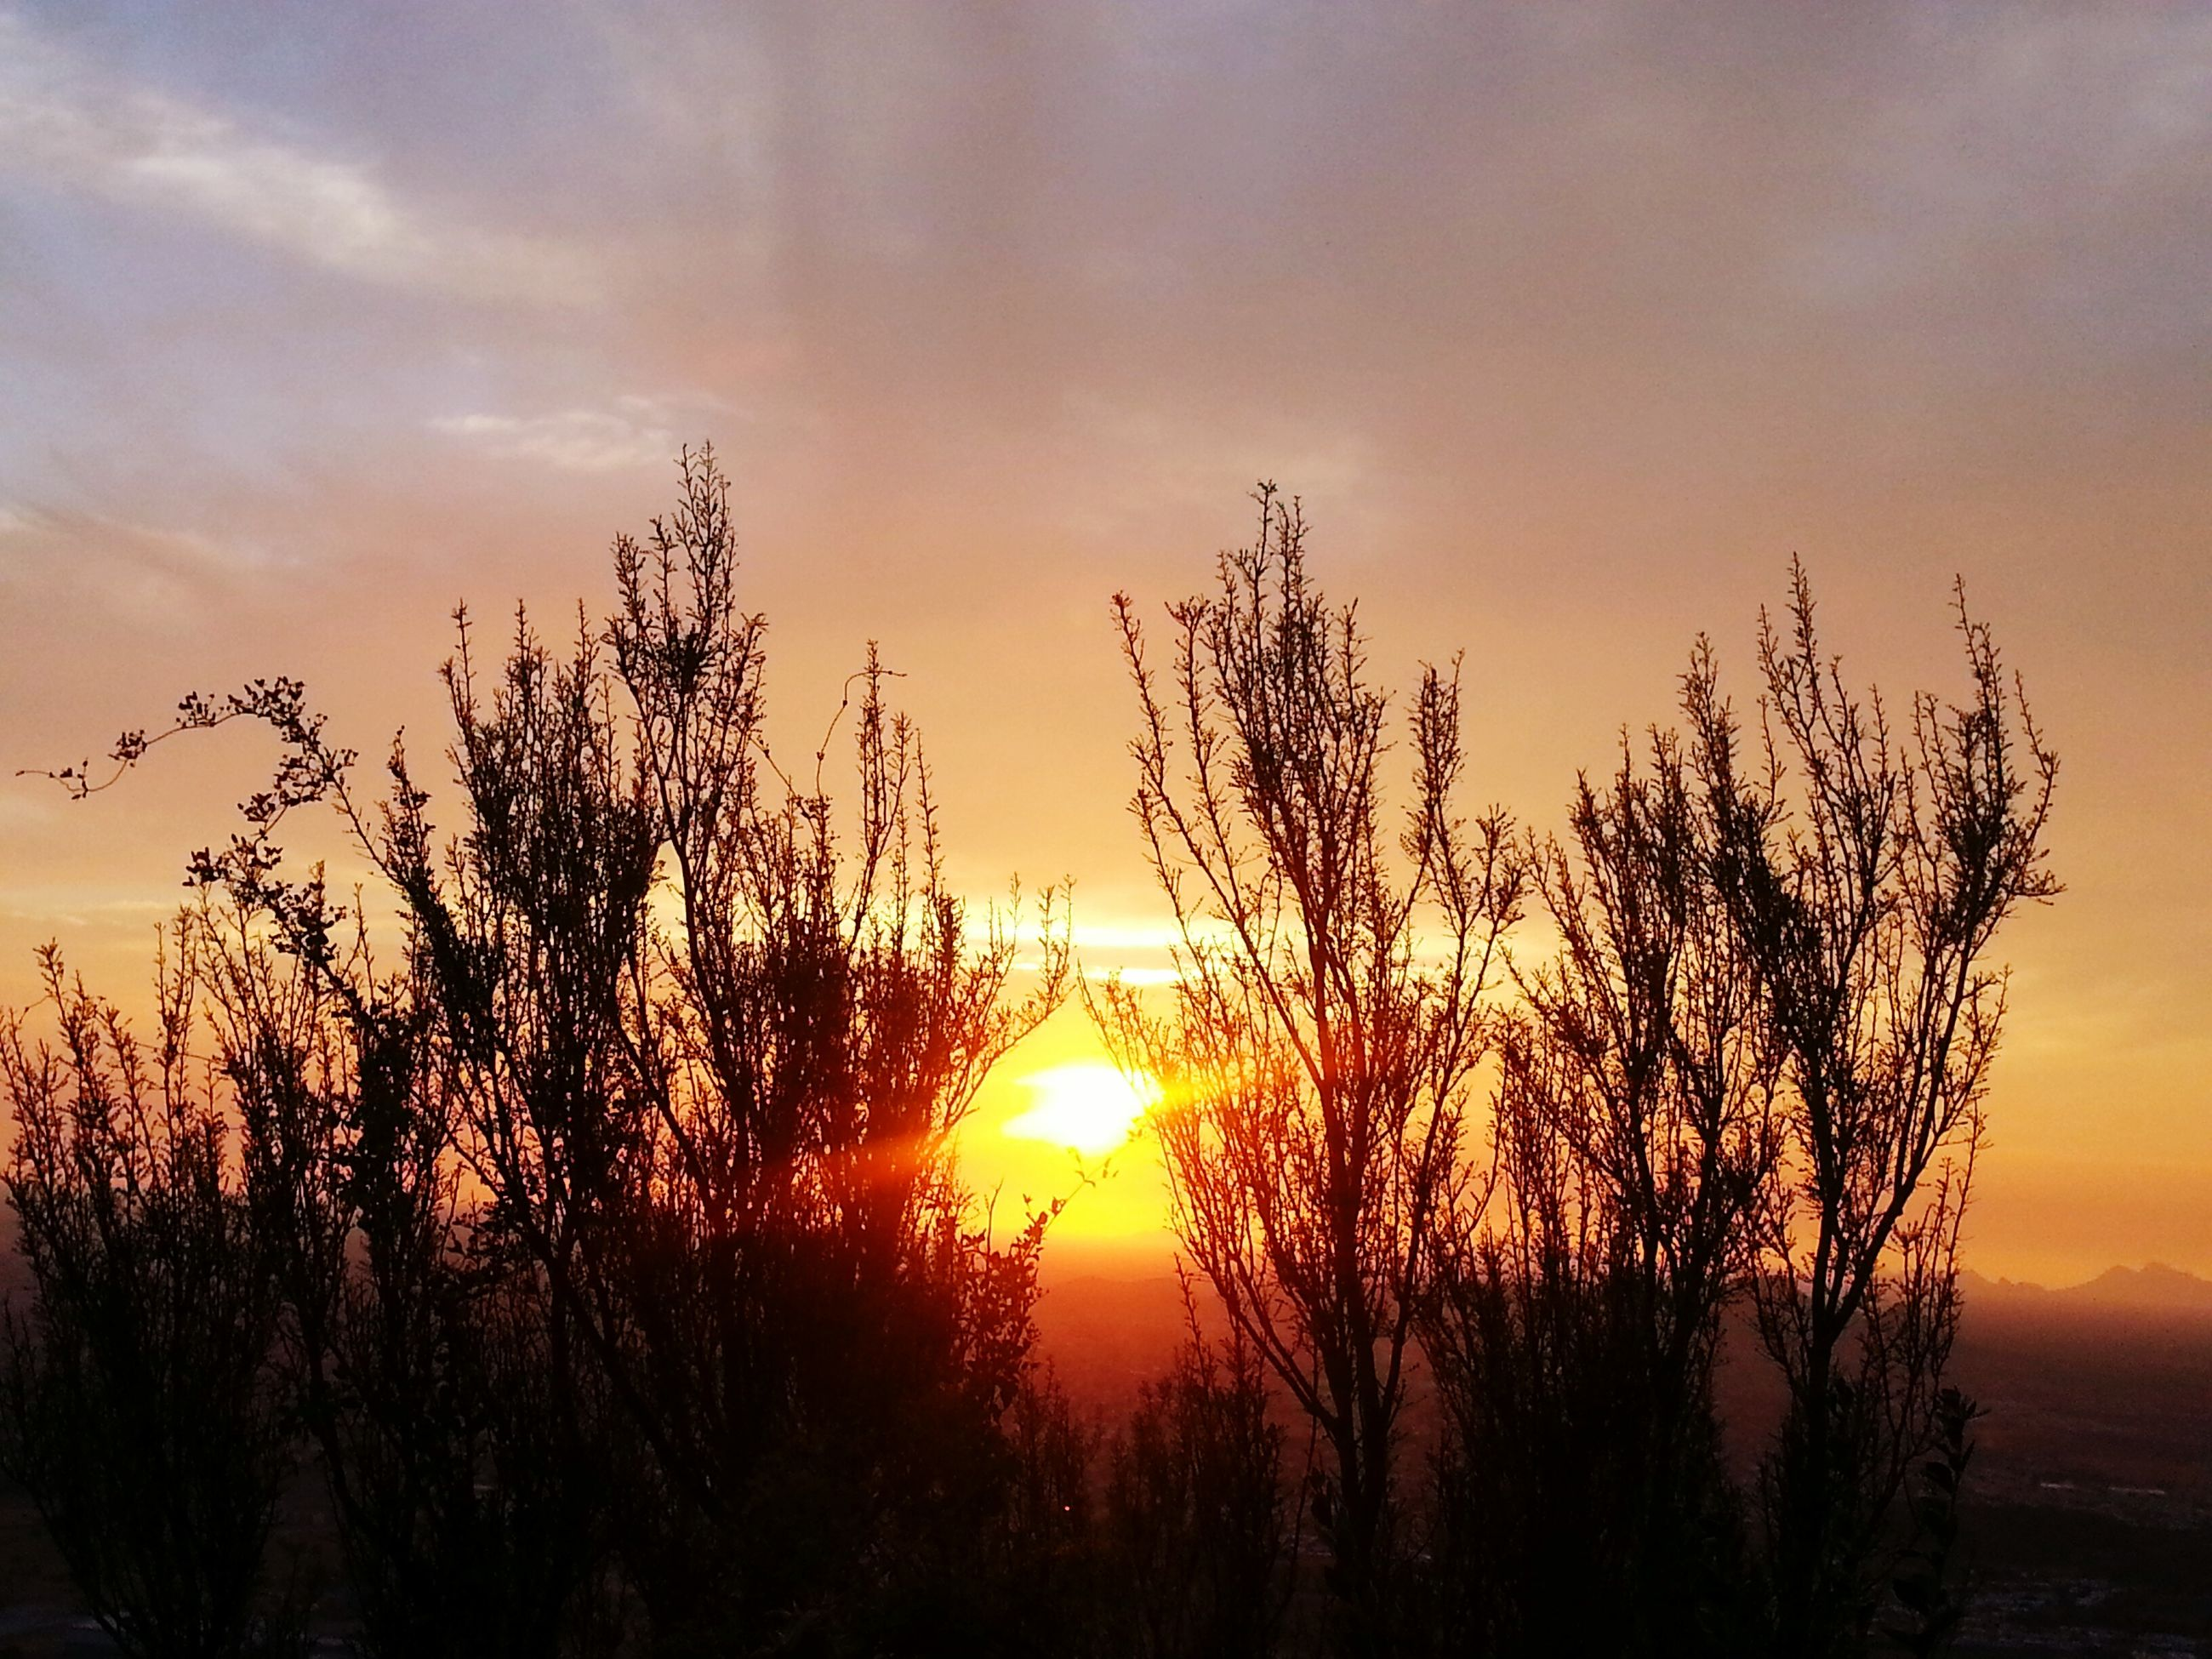 sunset, silhouette, tranquil scene, tranquility, beauty in nature, scenics, sky, orange color, bare tree, sun, tree, nature, idyllic, cloud - sky, branch, growth, landscape, dramatic sky, outdoors, plant